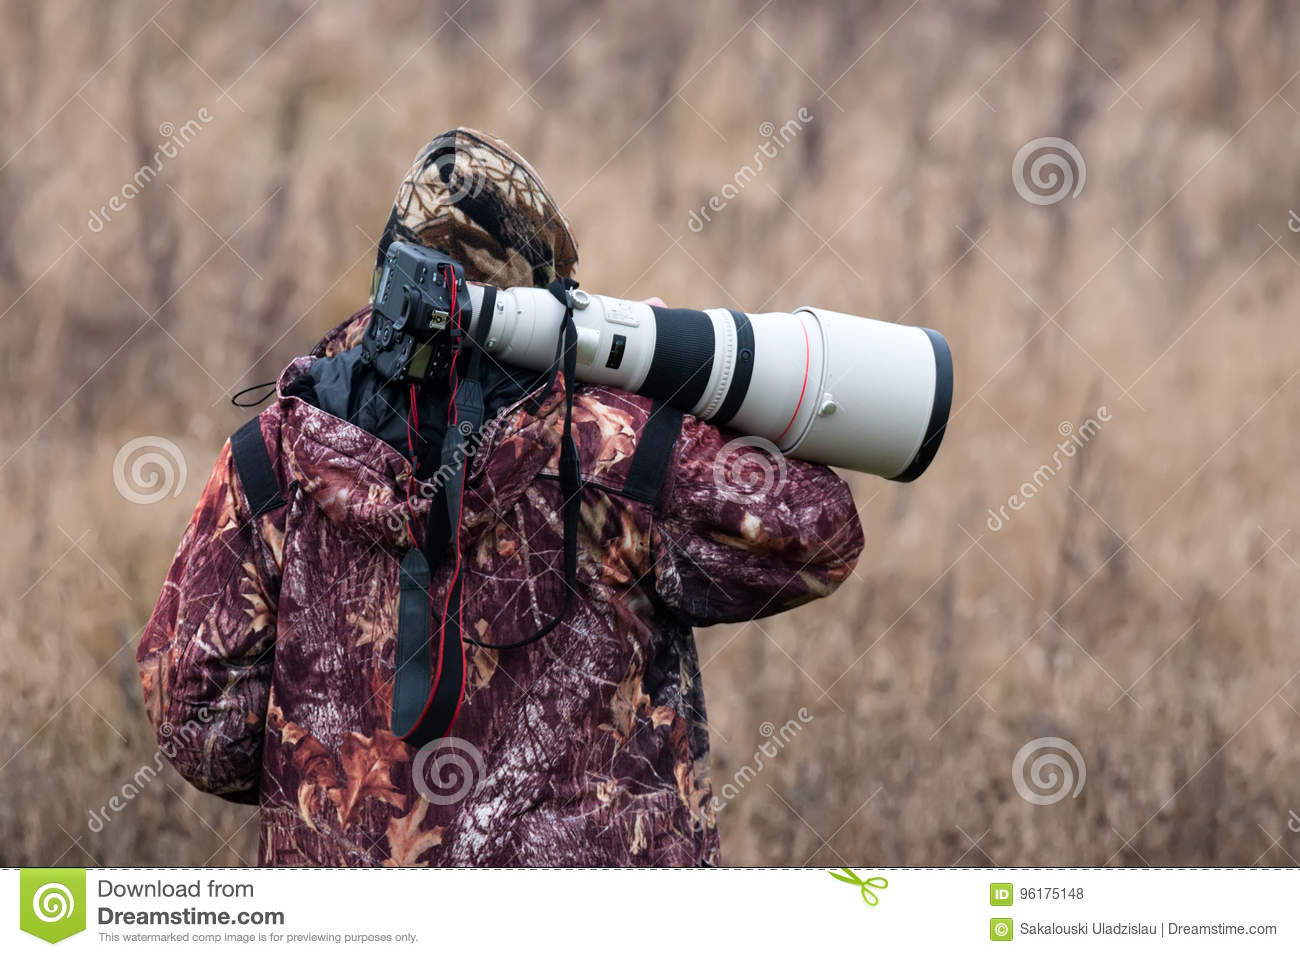 Animal Photographer. Photo Hunter. A Man In Camouflage Uniform With A Black Camera And A Large White Lens. A Man With A Camera On